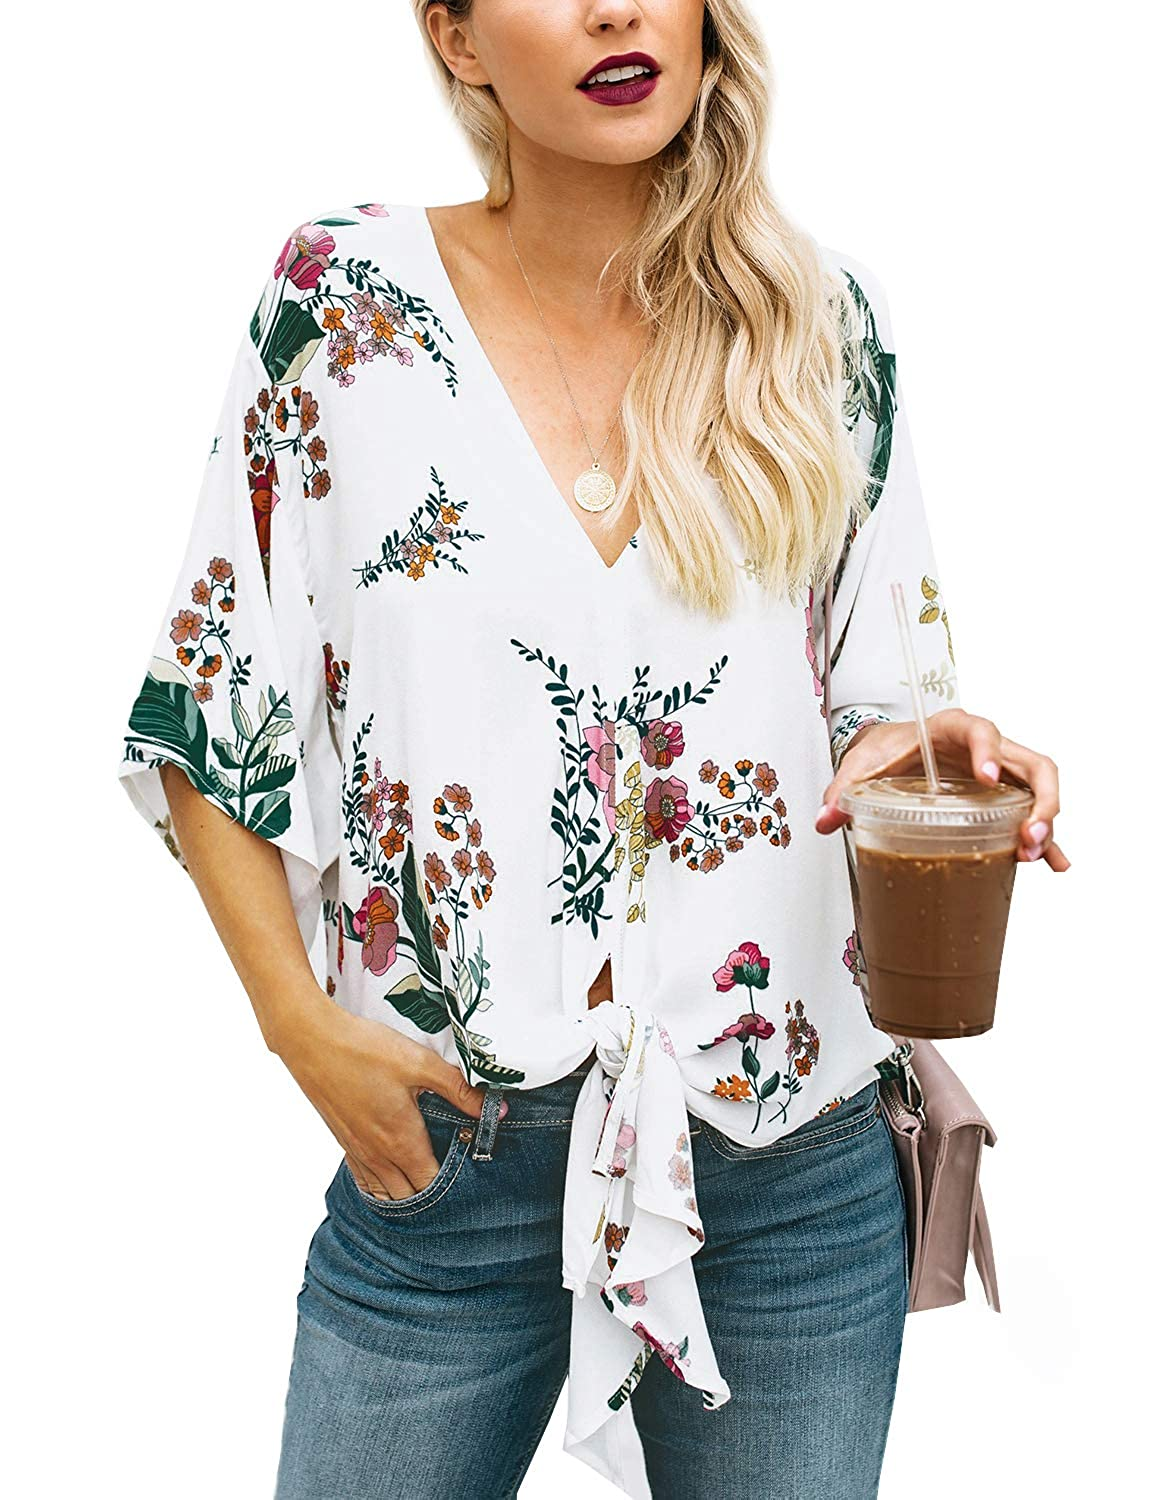 385c2788146 ... comfortable Blouse shirts with smooth touch and excellent workmanship.  NOT SHEER & NOT SEE THROUGH ▷【UNUSUAL DESIGN】: 1/2 Bell Sleeve Tops for  Women ...